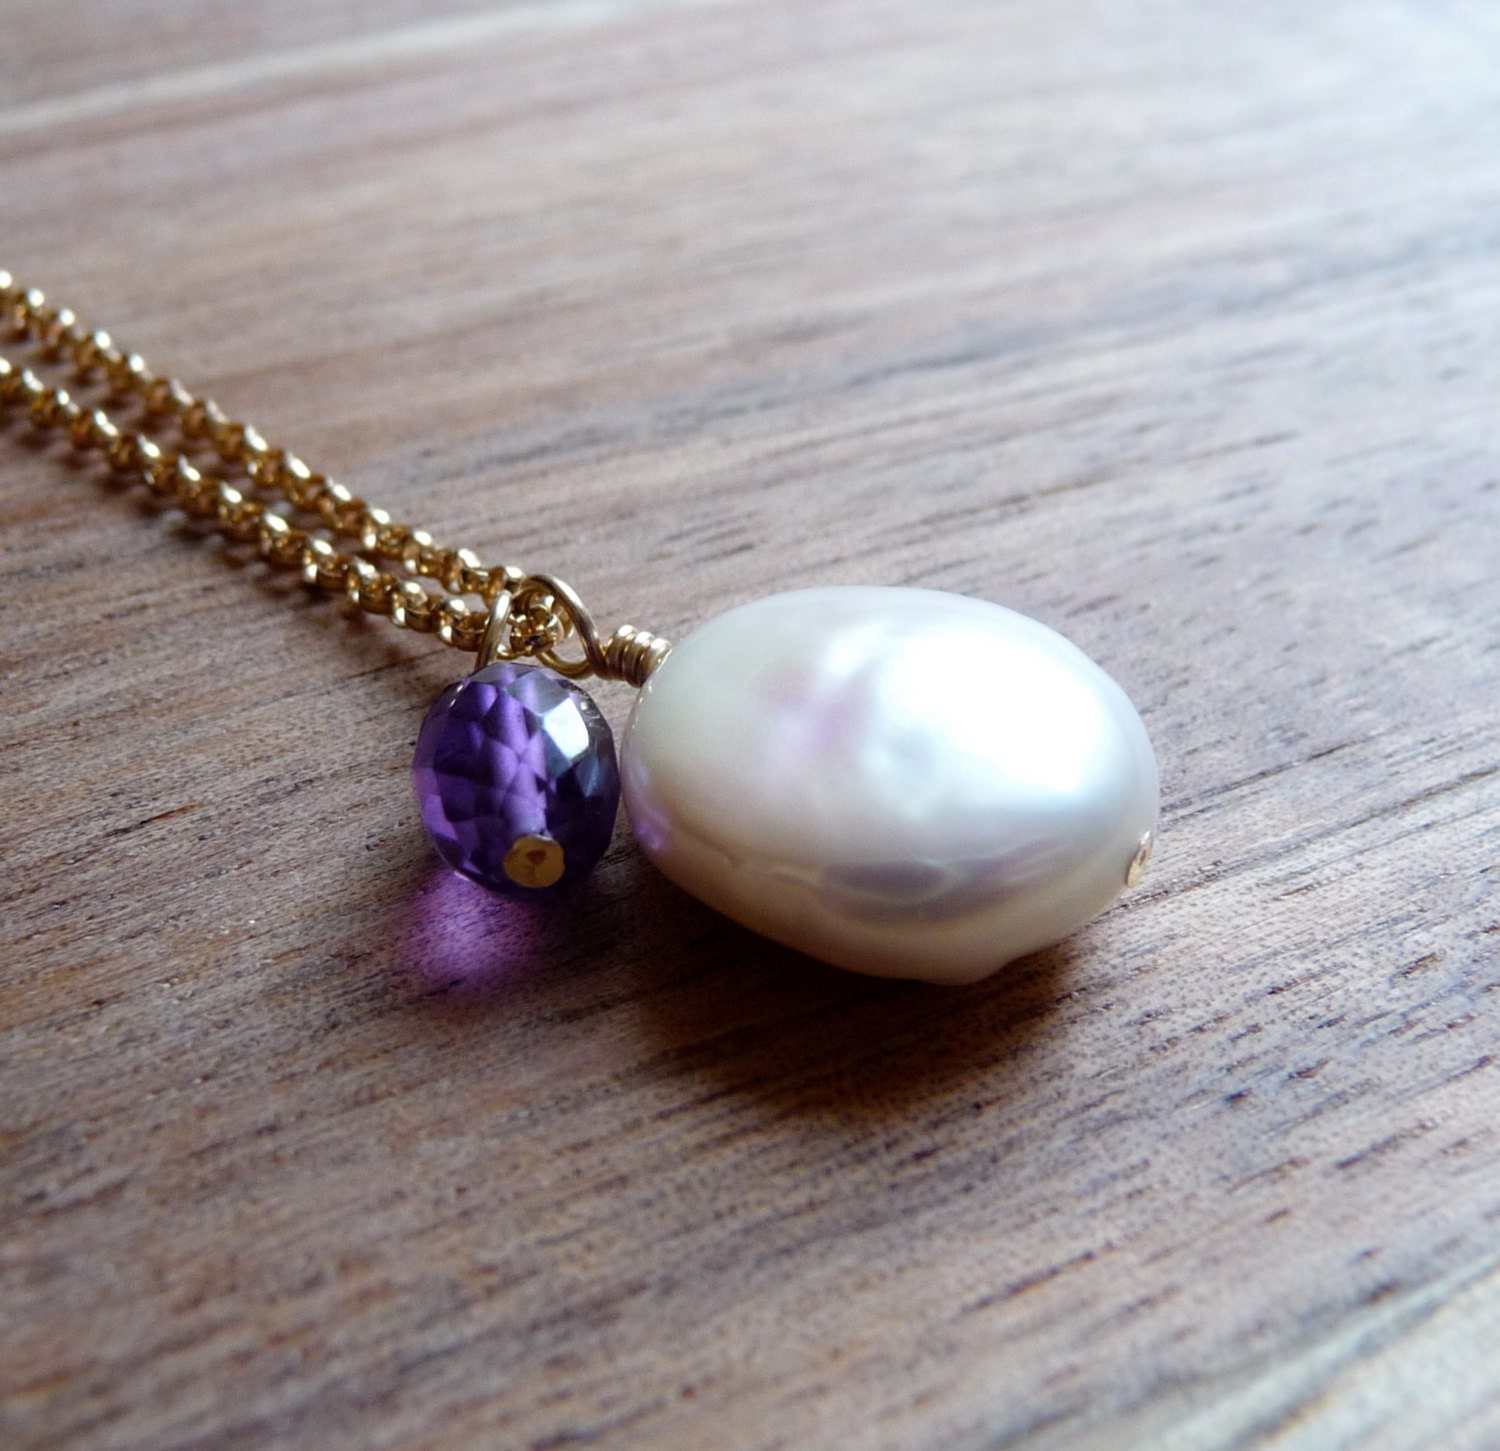 Pearl Necklace, Amethyst Necklace, Purple Amethyst Gemstone, Coin Pearl, February Birthstone, Minimal Jewelry, Gold Filled Chain Necklace - karinagracejewelry